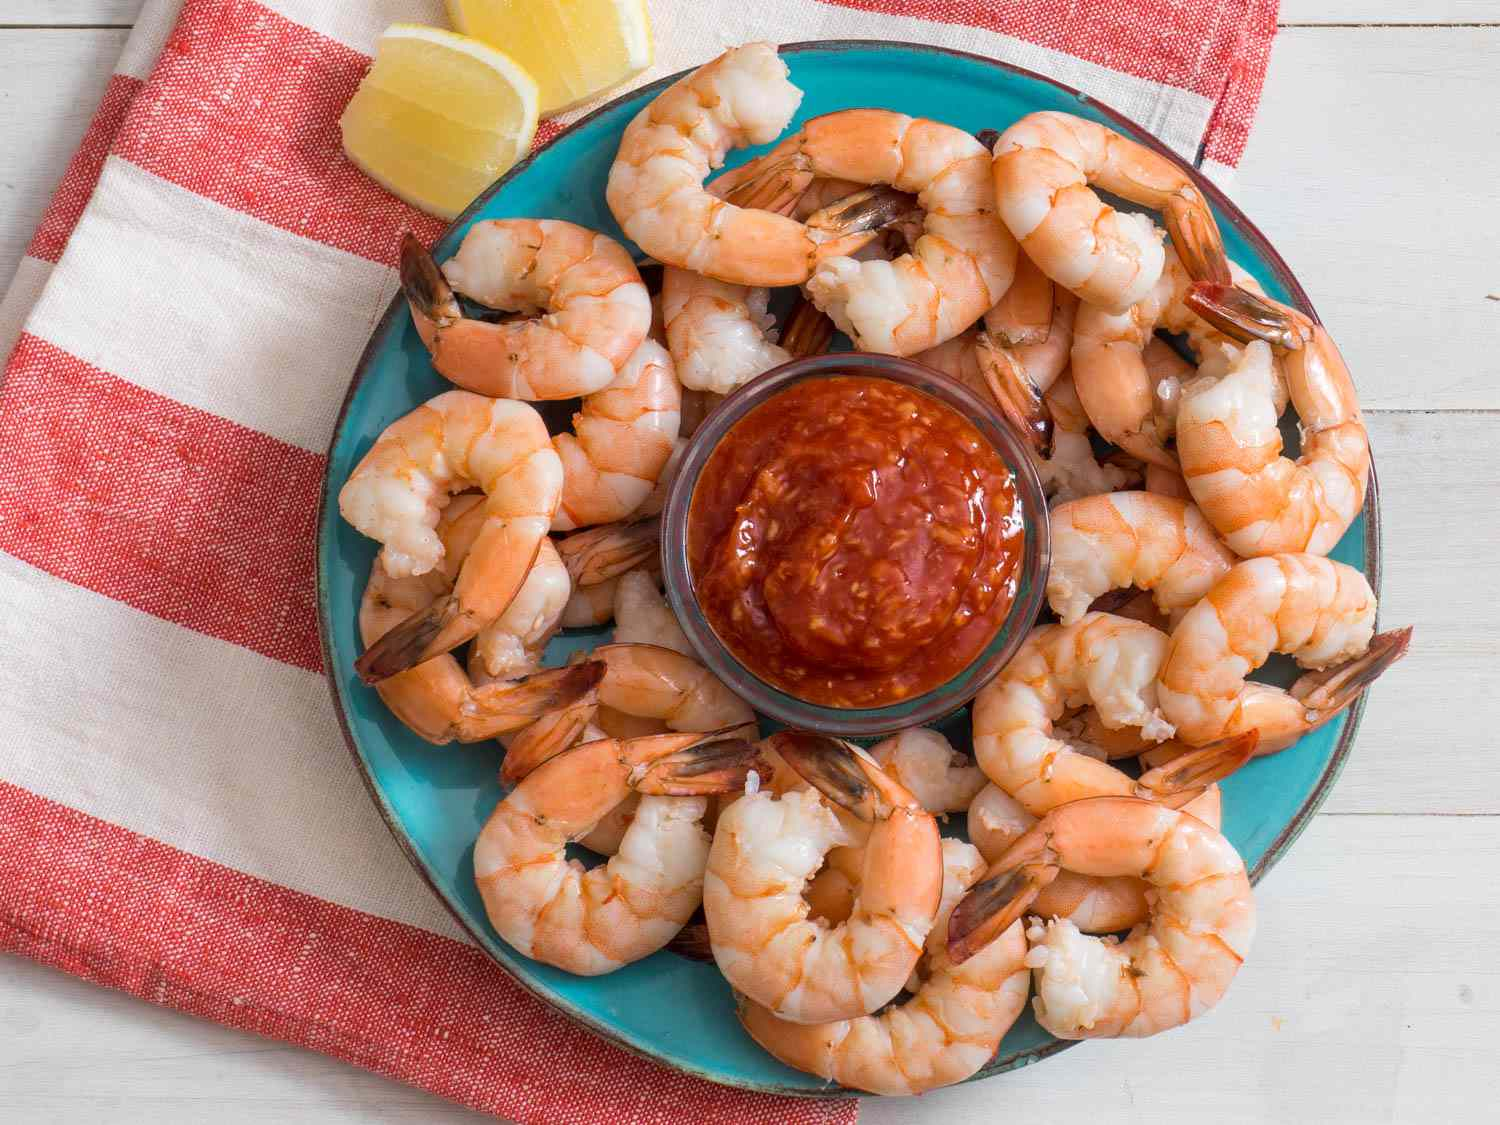 Shrimp cocktail and sauce on a plate with lemon wedges